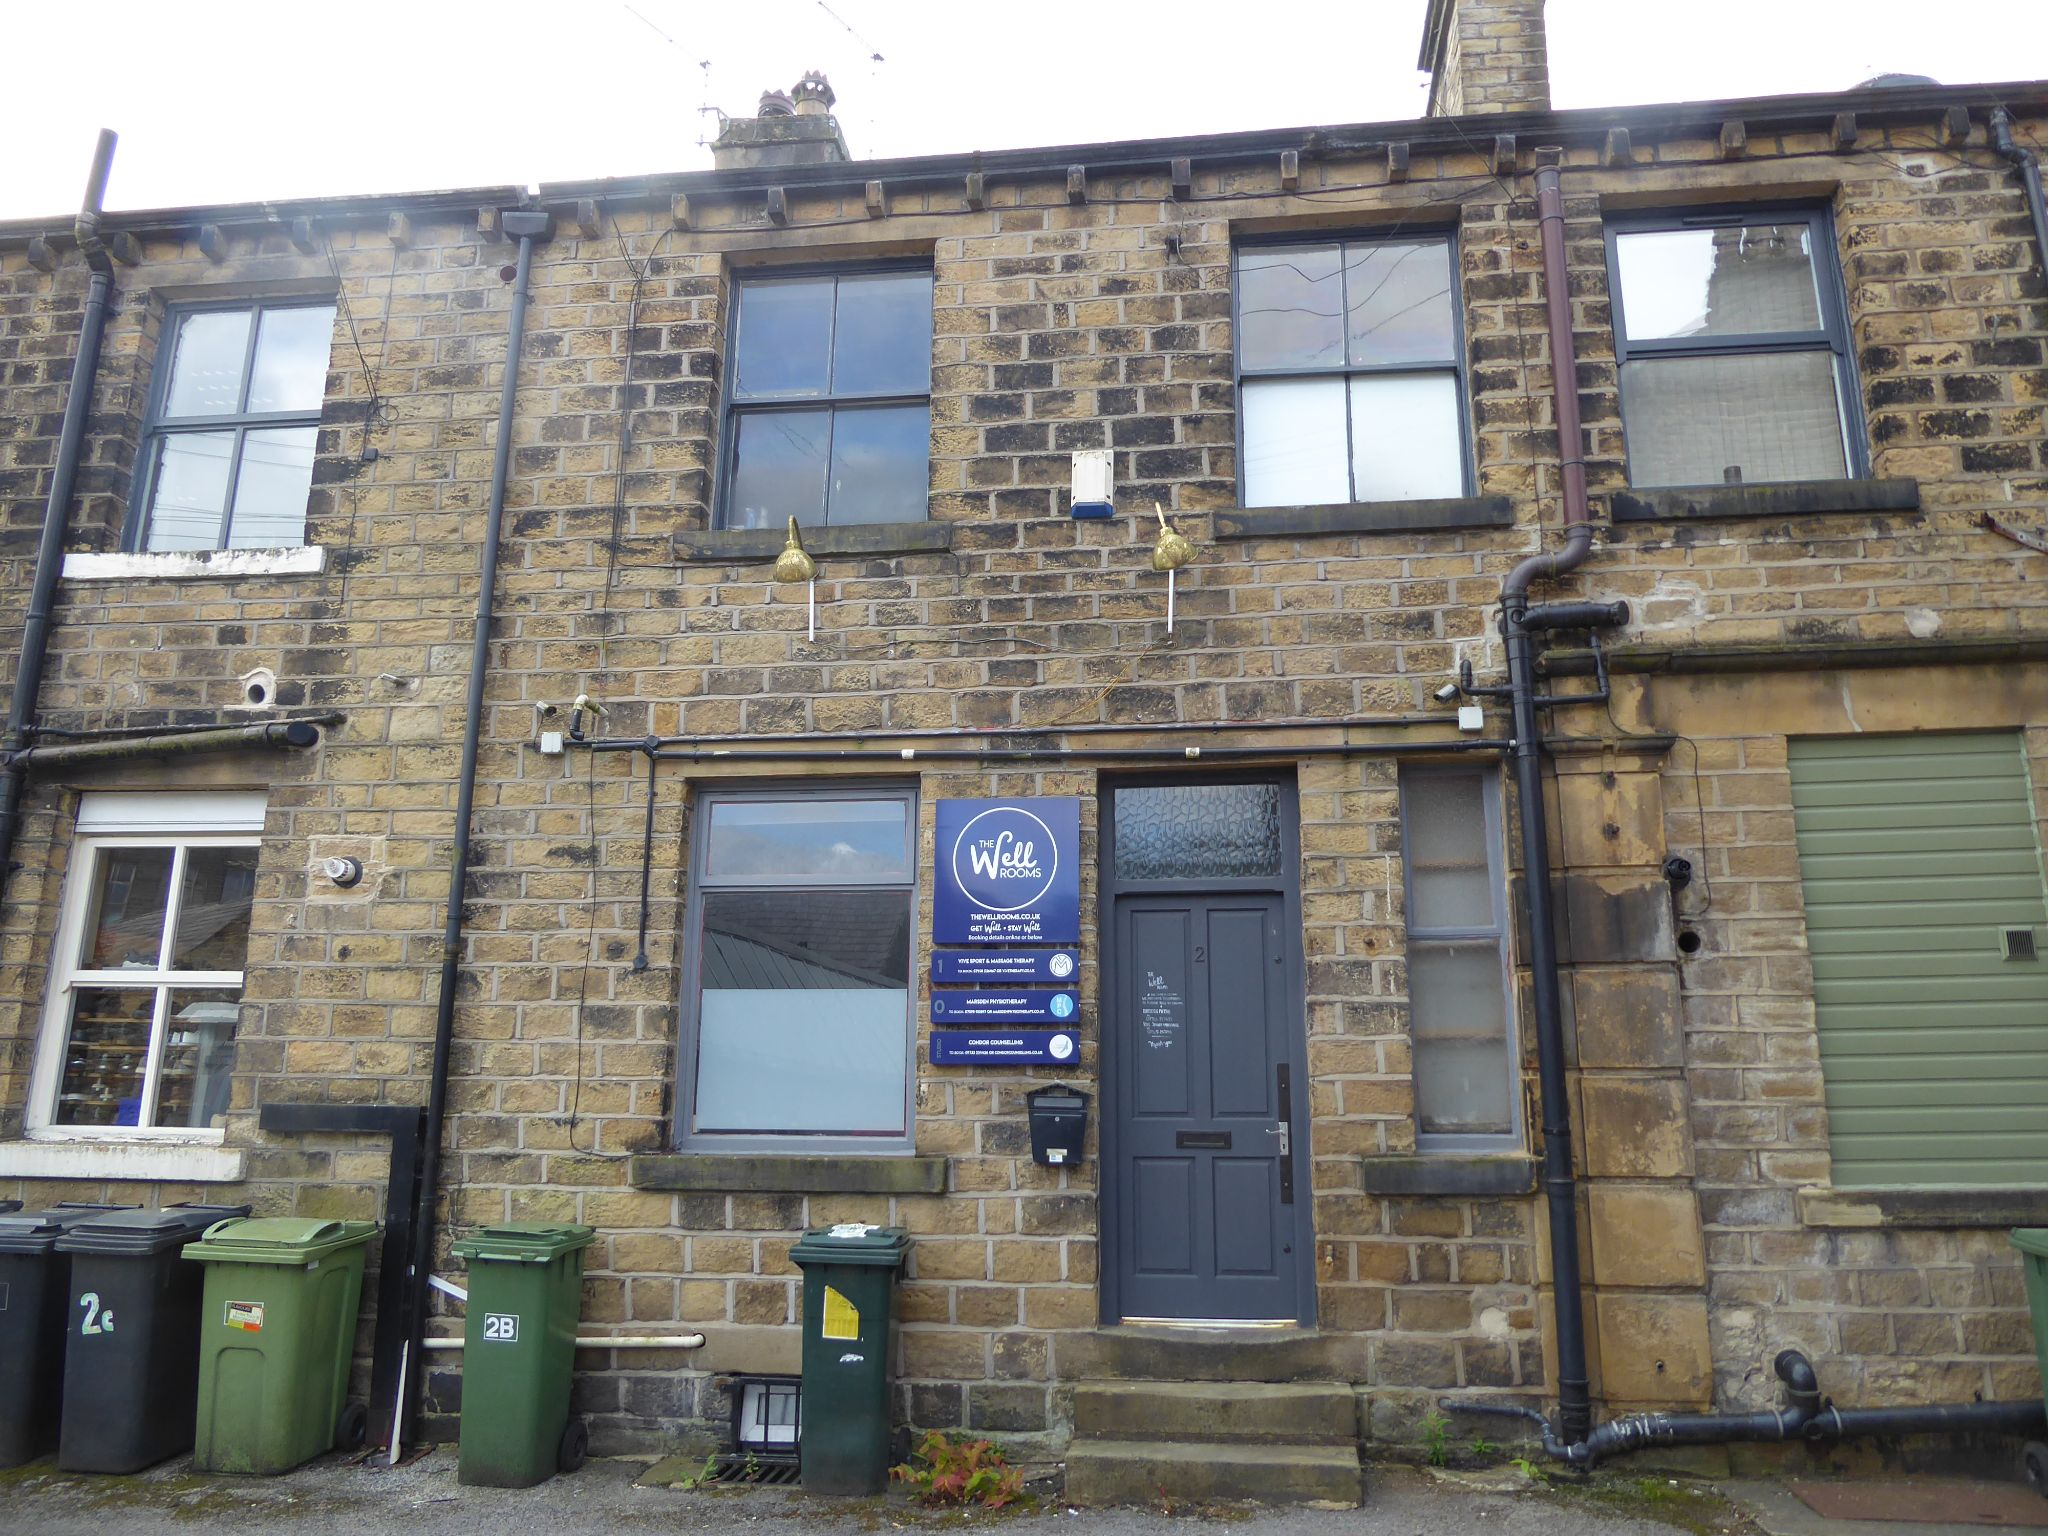 Commercial Property To Let in Marsden - Photograph 1.